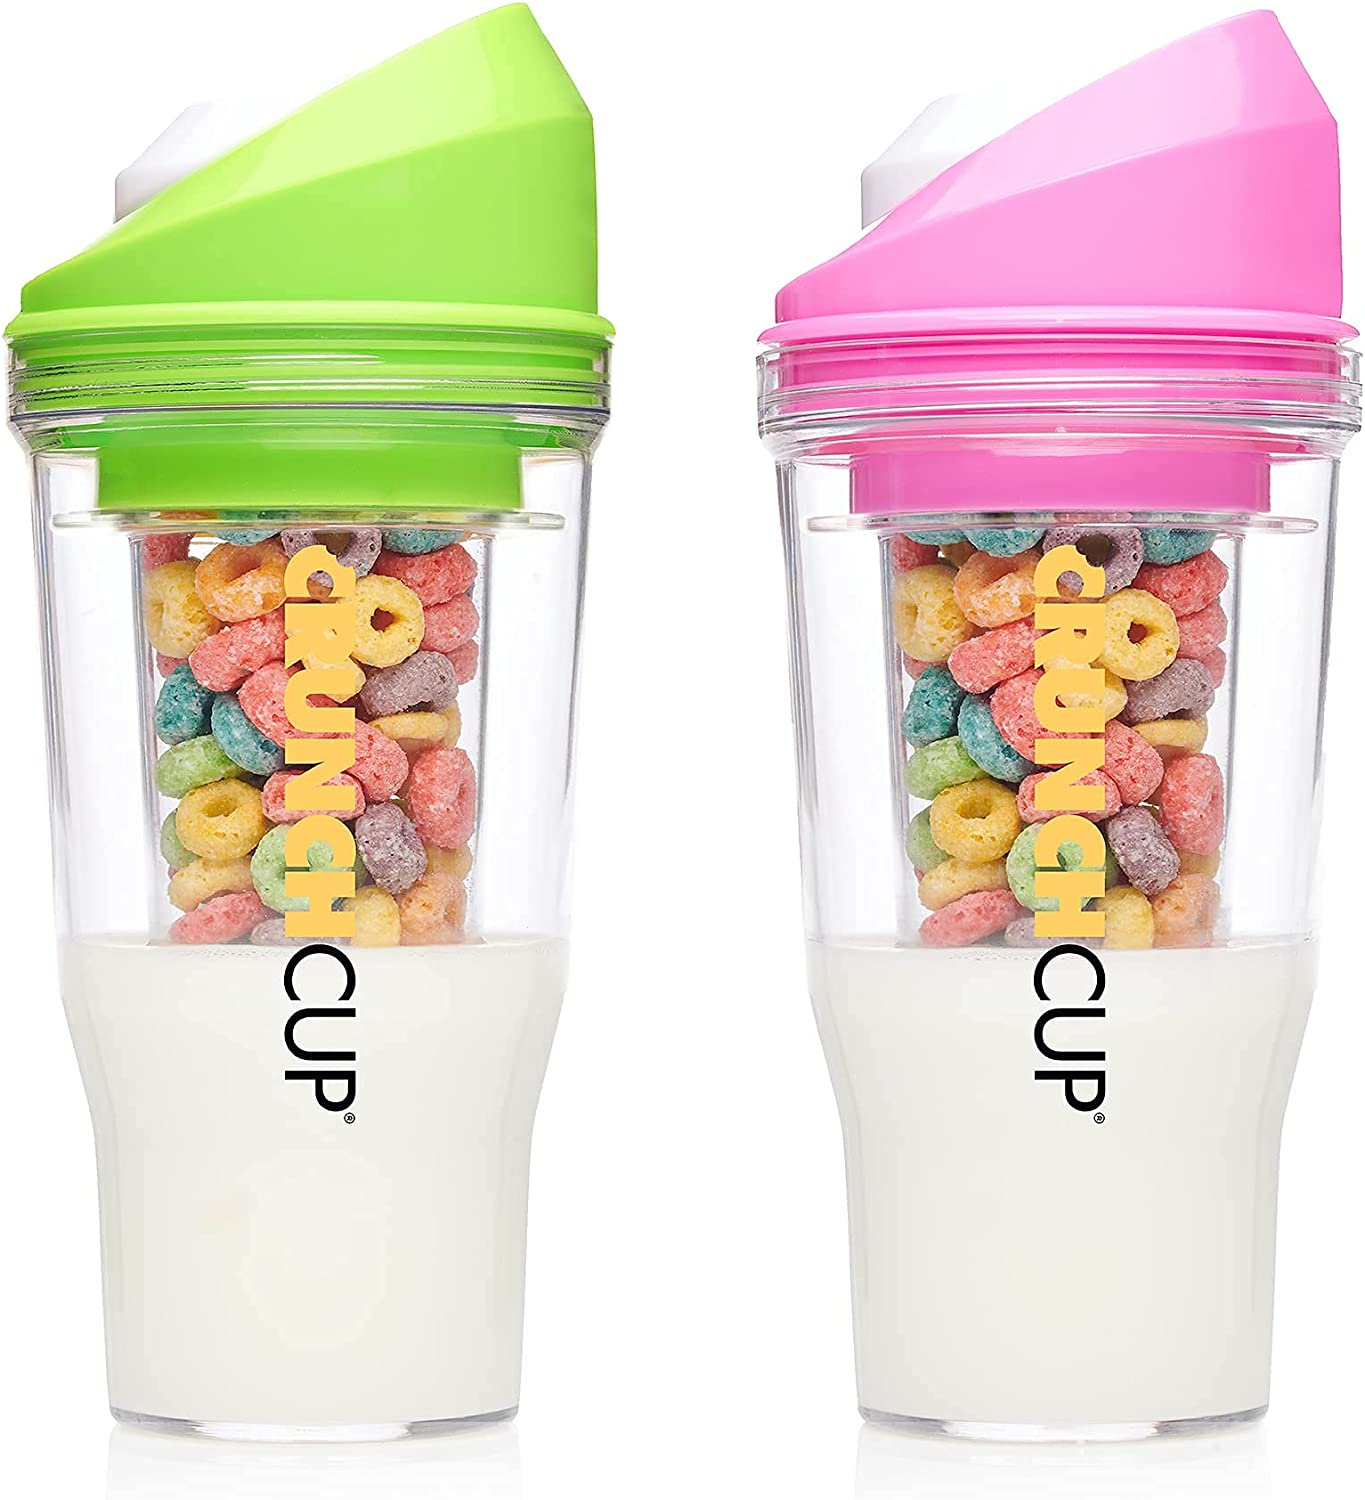 Bundle Save 40% OFF Cheap Sale 15% on Green CrunchCups Pink Manufacturer direct delivery Two